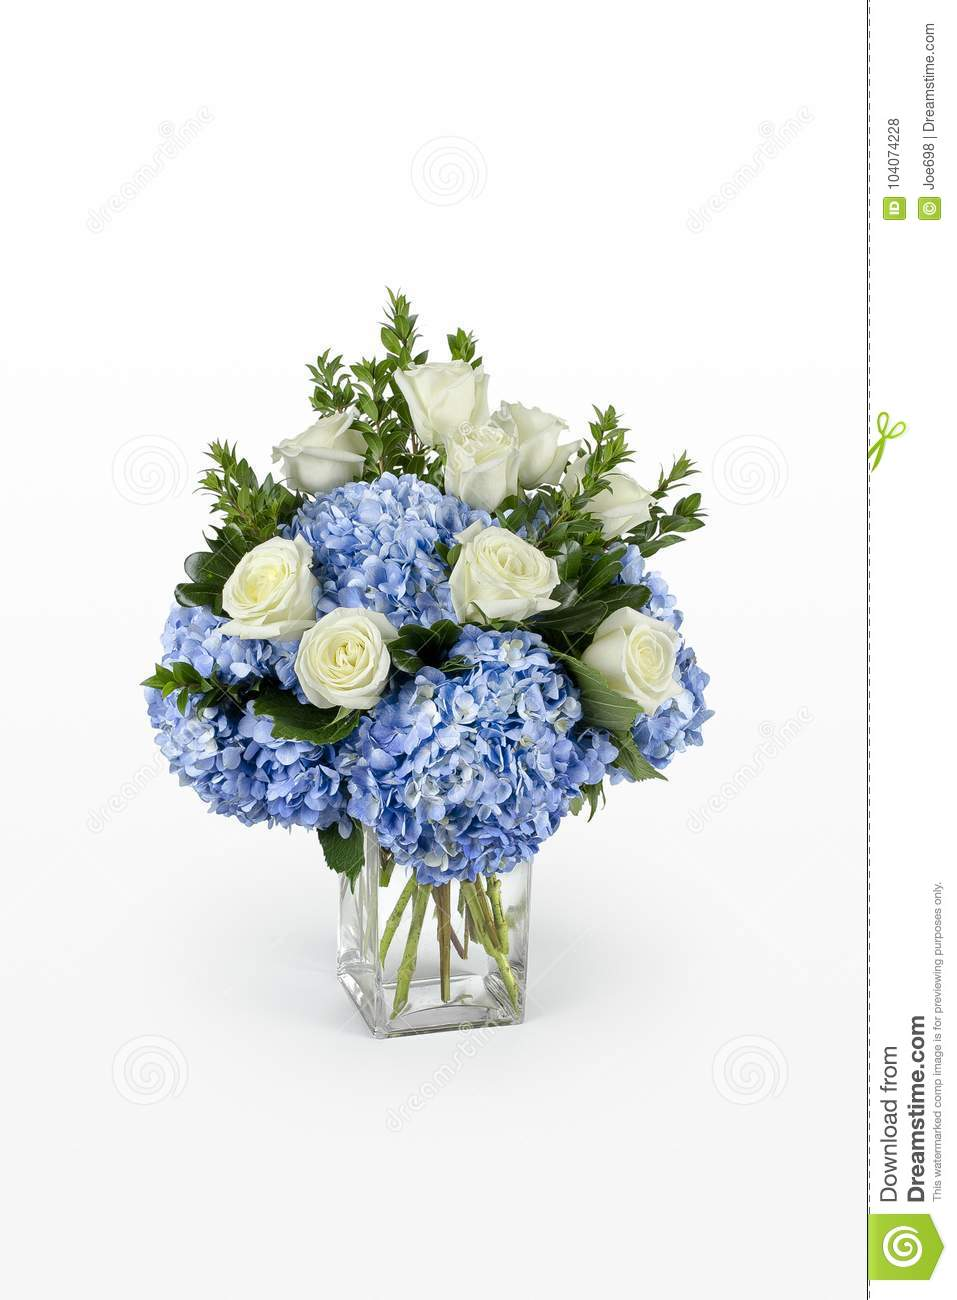 Blue Hydrangea And White Roses Flower Arrangement In A Large Glass